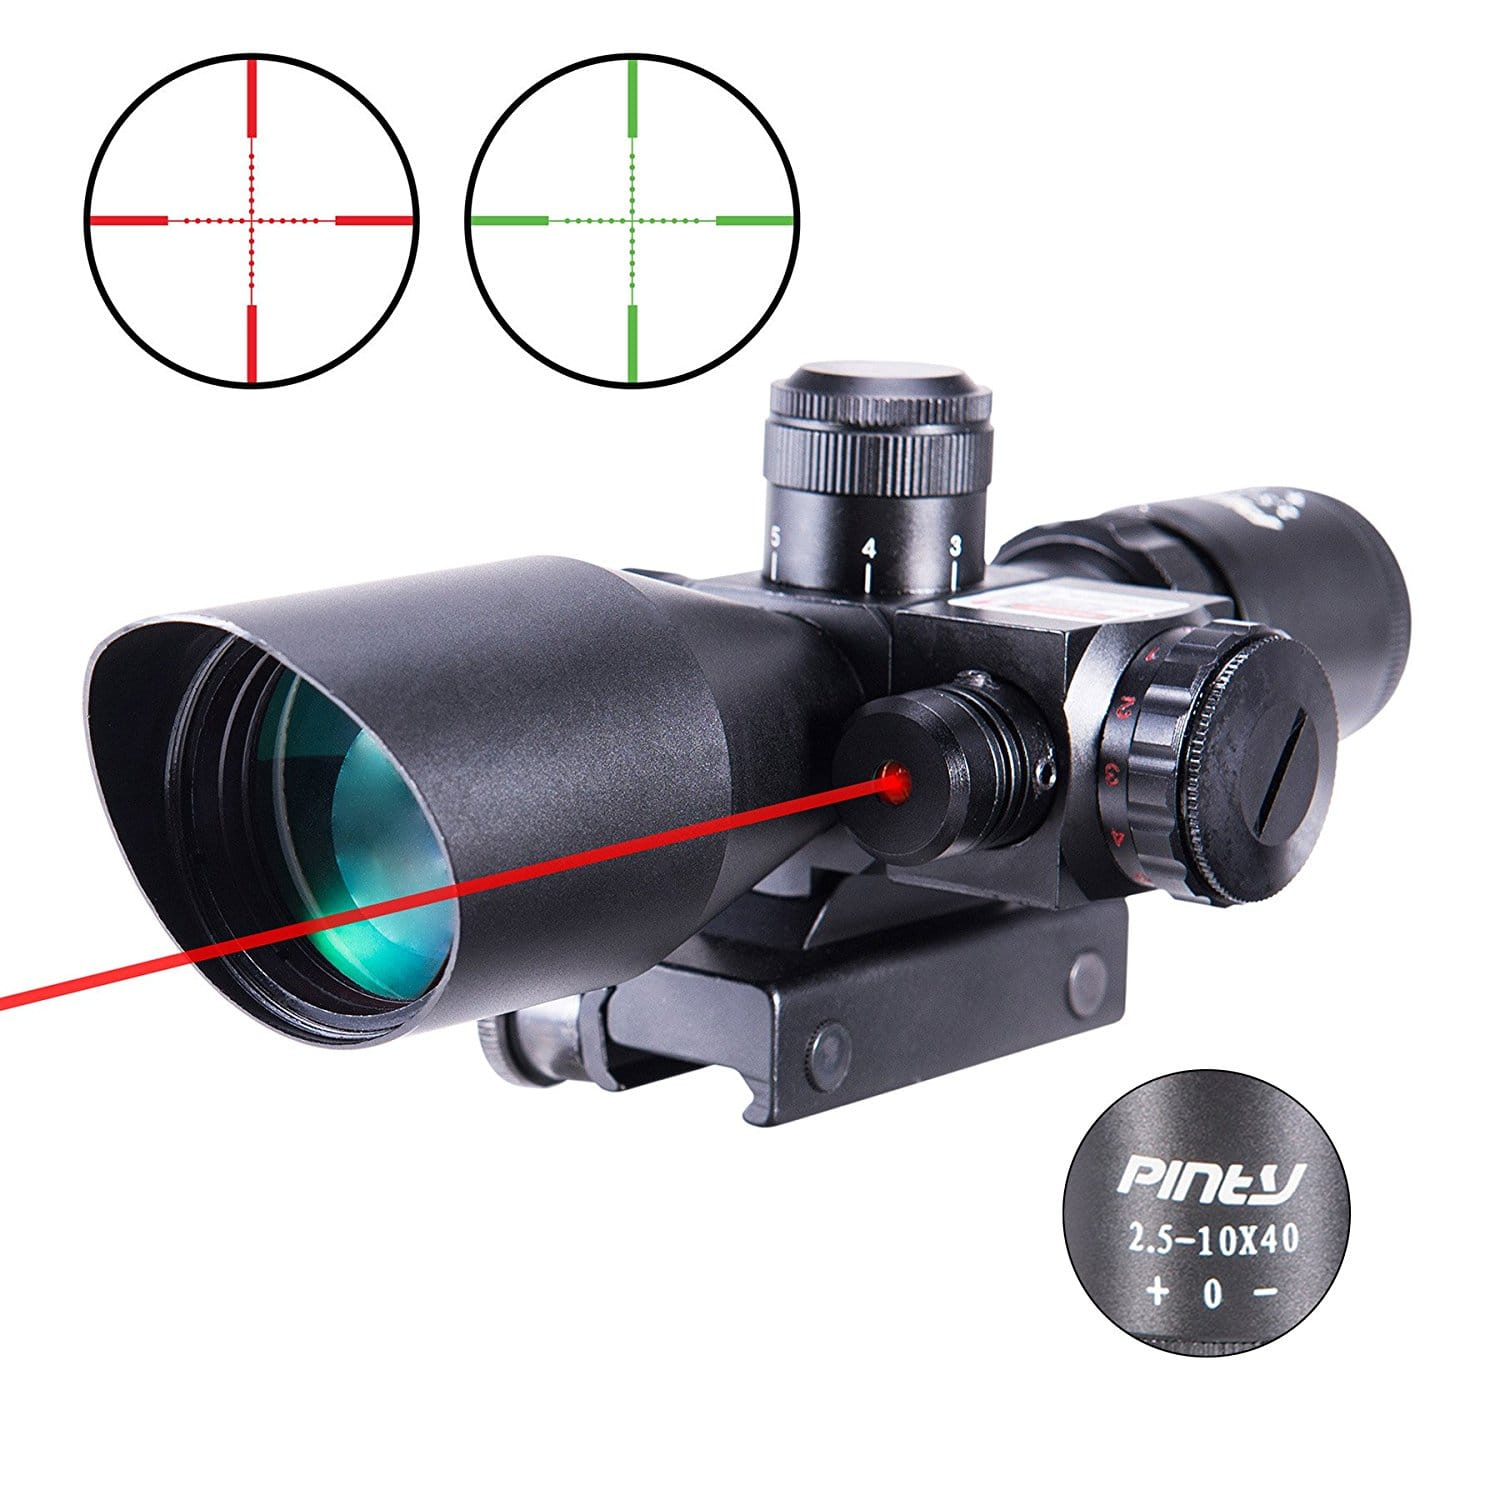 Pinty 2.5-10x40 AOEG Red Green Illuminated Mil-dot Tactical Rifle Scope with Red Laser Combo - Green Lens Color $27.99 + FS